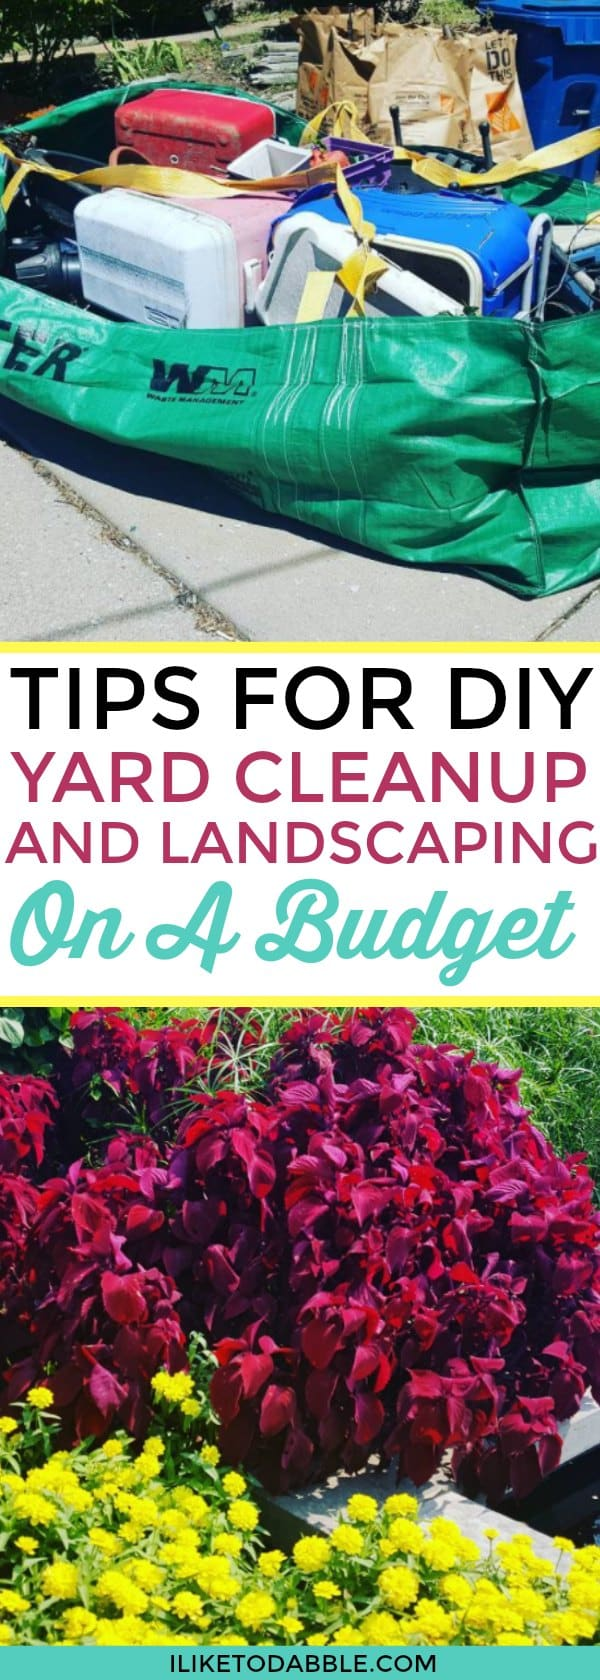 Tips for diy yard cleanup and landscaping on a budget iliketodabble tips for diy yard cleanup and landscaping on a budget cheap landscaping ideas landscaping workwithnaturefo